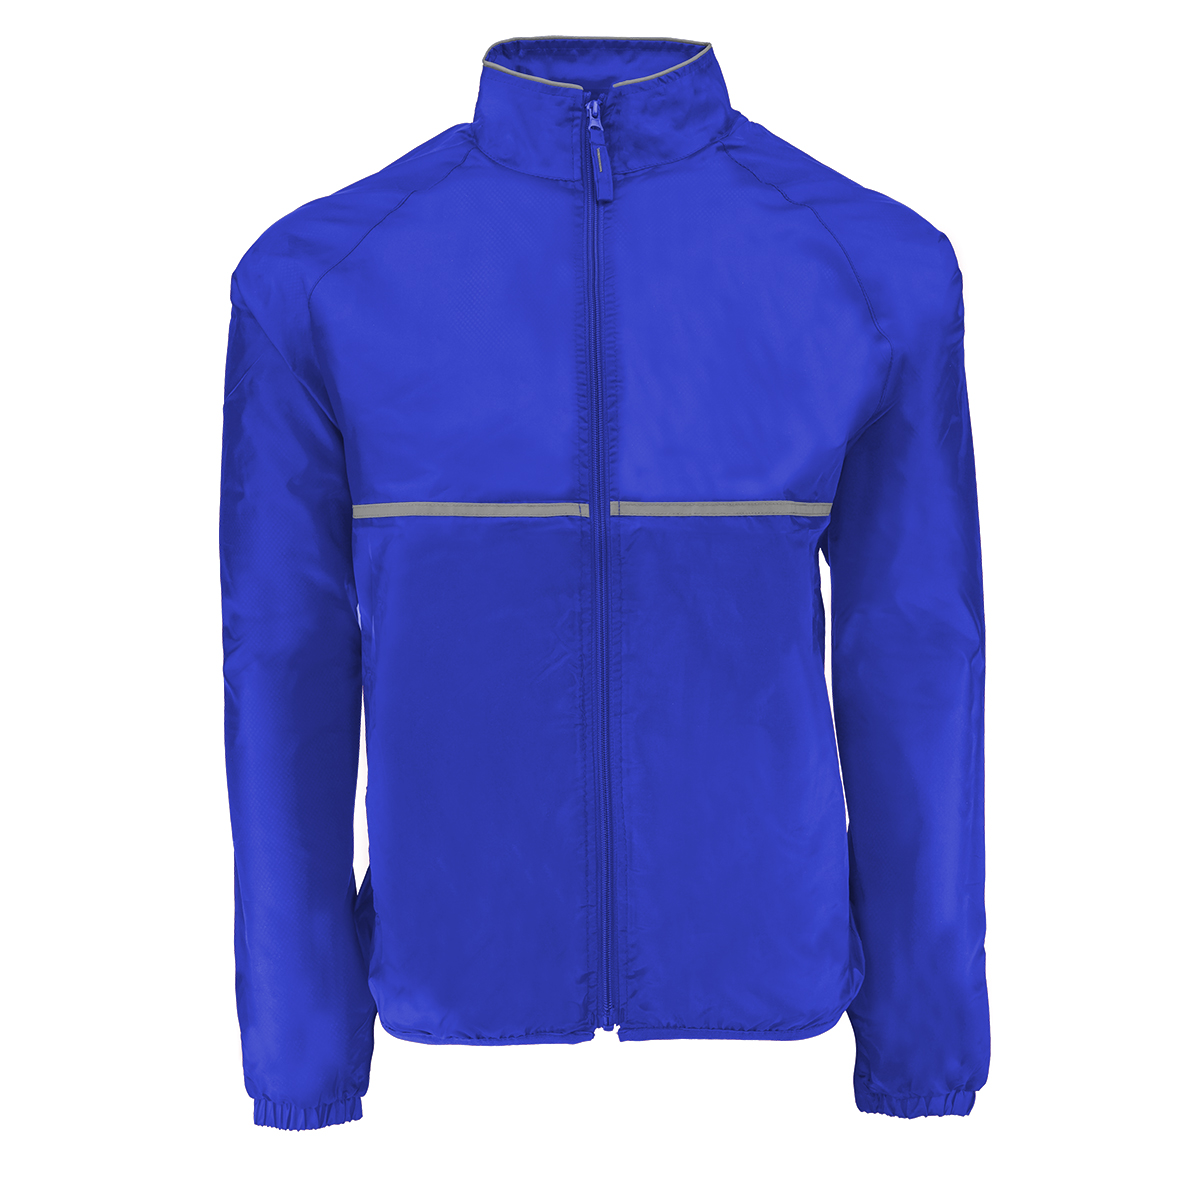 Reebok-Men-039-s-Relay-Jacket